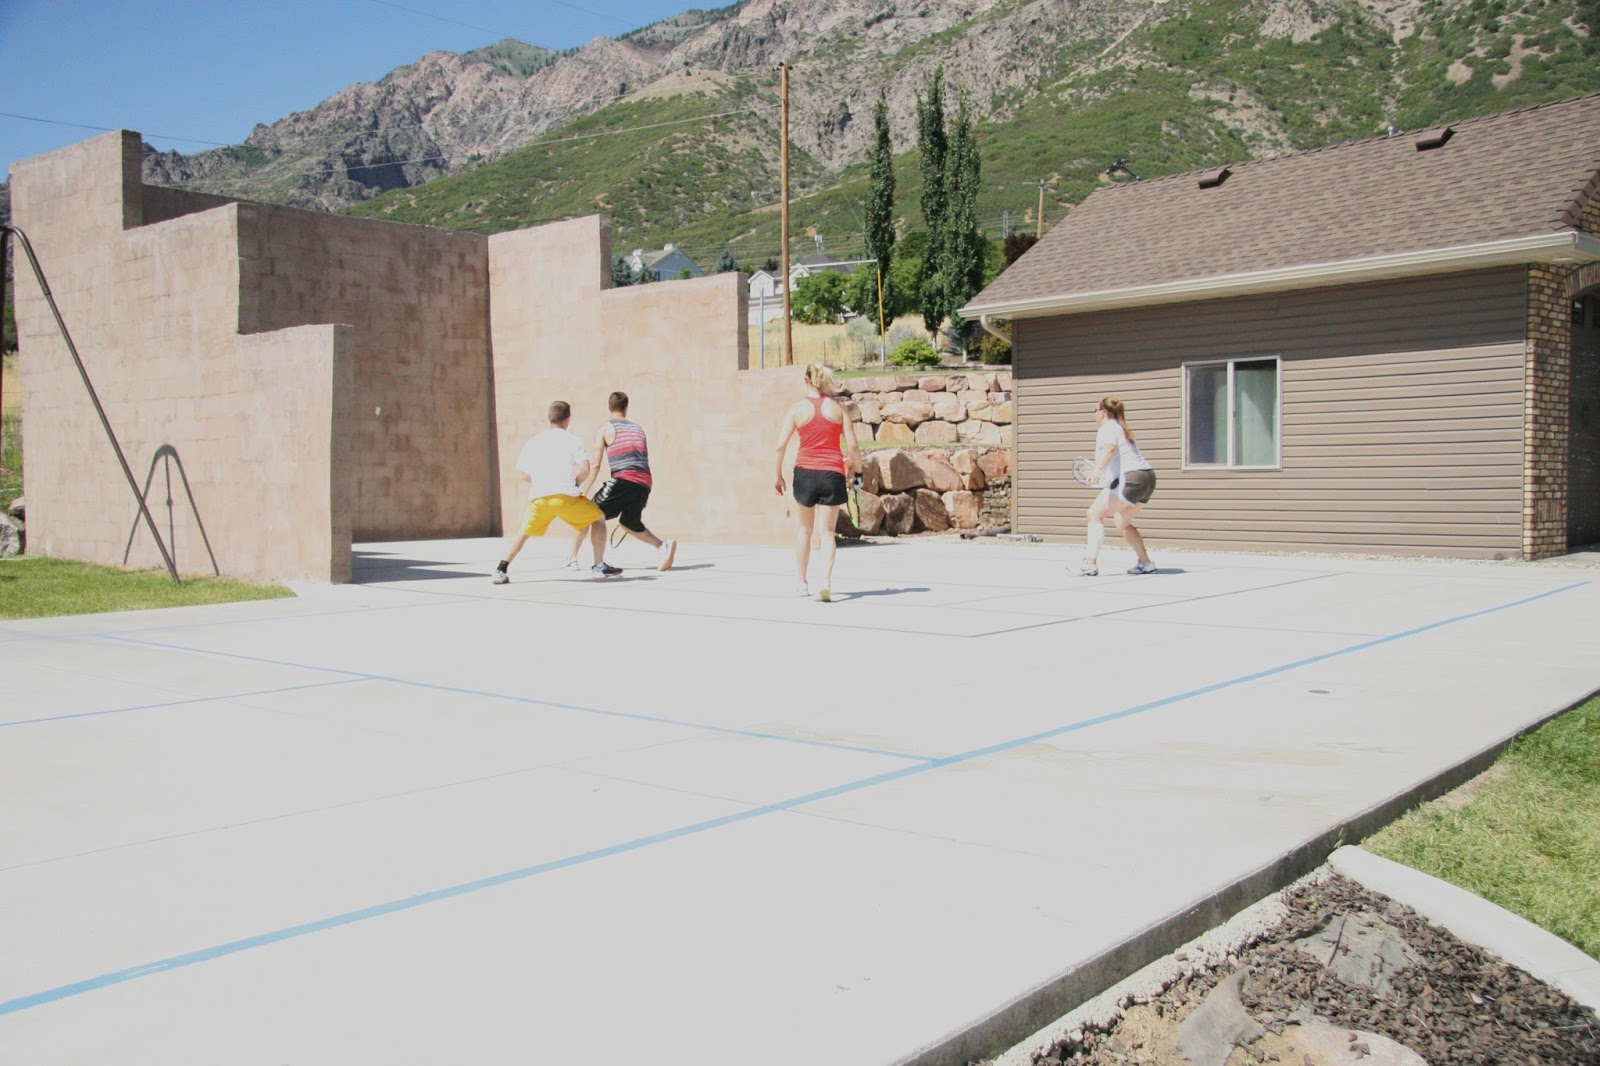 Diy projects building an outdoor racquetball court for Racquetball court construction cost